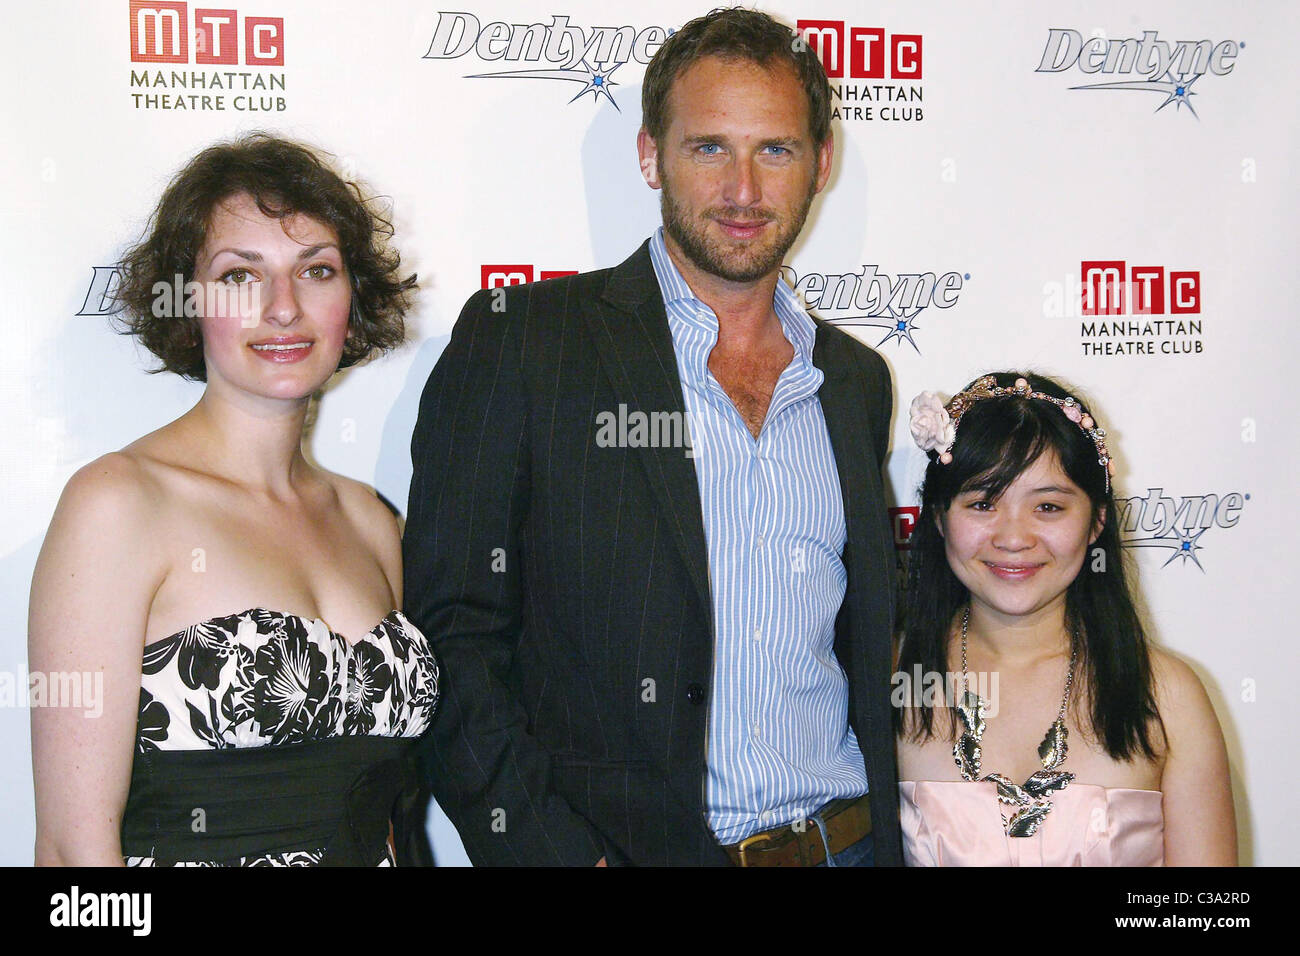 Dina Epshteyn, Josh Lucas, and Nhi Hong Josh Lucas joins Dentyne and Manhattan Theatre Club to host REALationships, - Stock Image